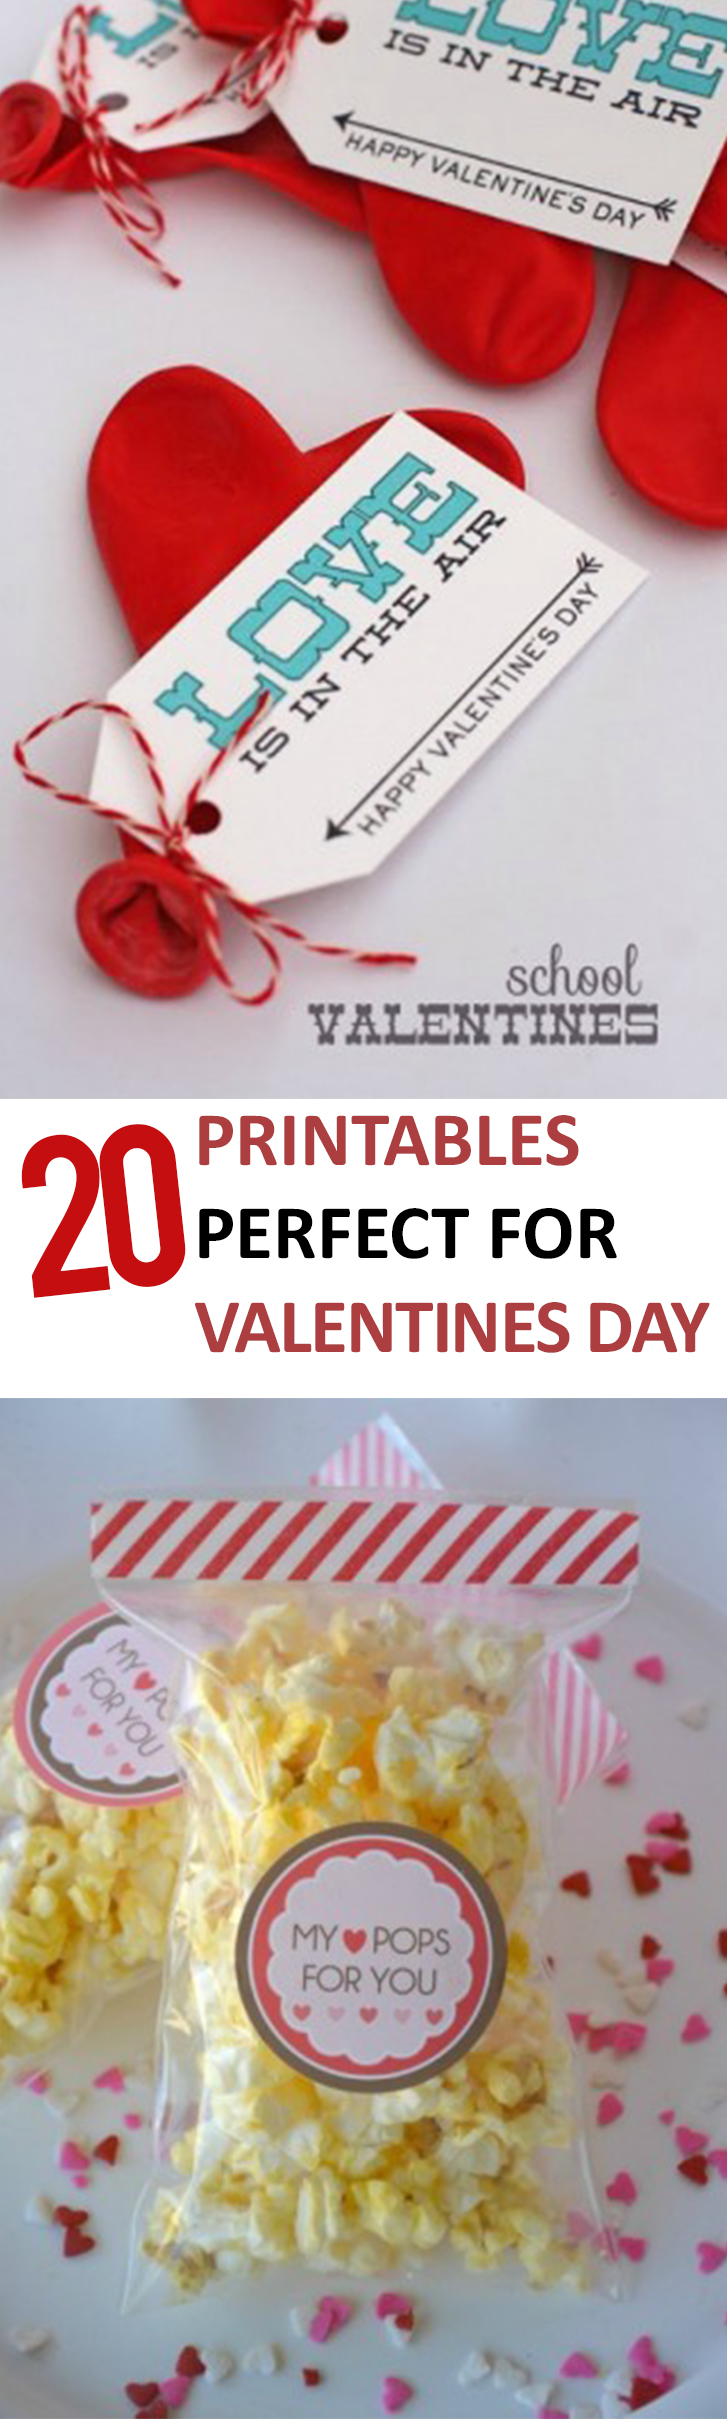 pin-20-printables-perfect-for-valentines-day